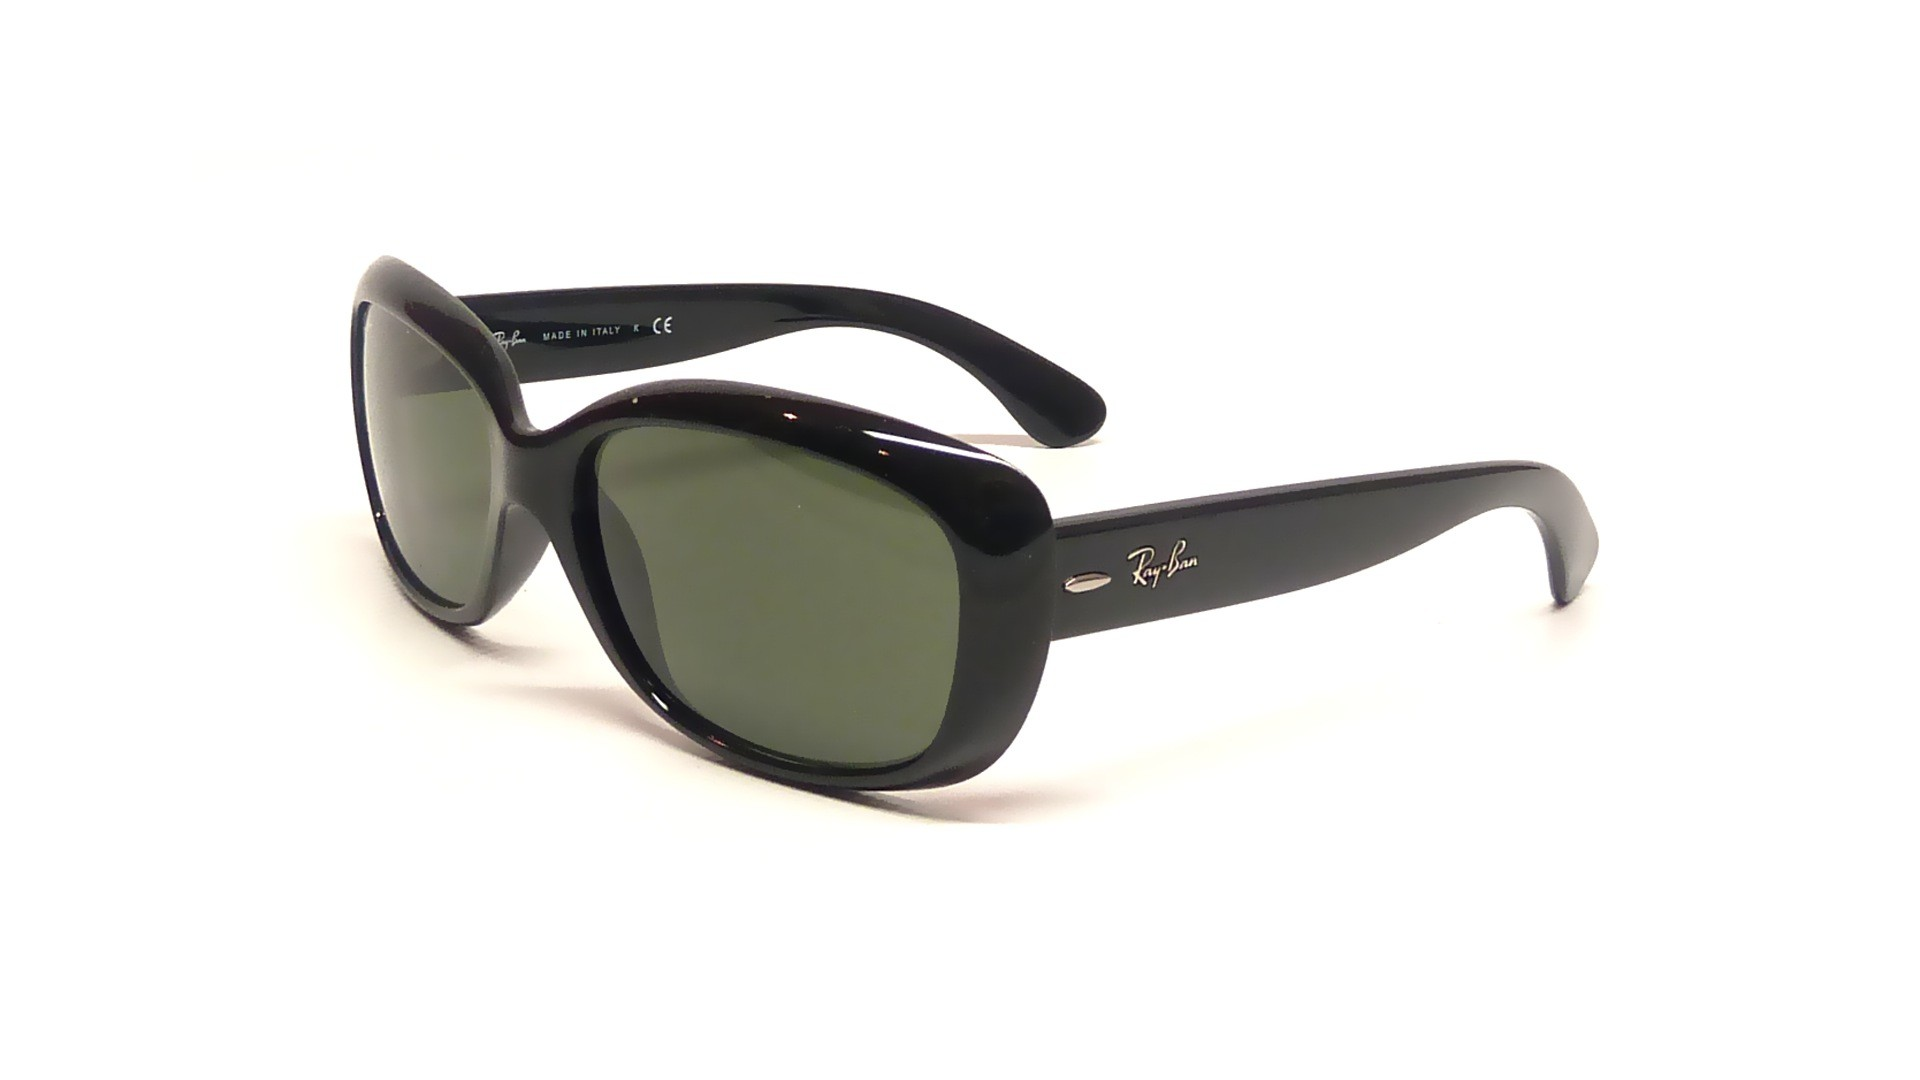 a707bb9a8c8 Sunglasses Ray-Ban Jackie Ohh Black RB4101 601 58-17 Large